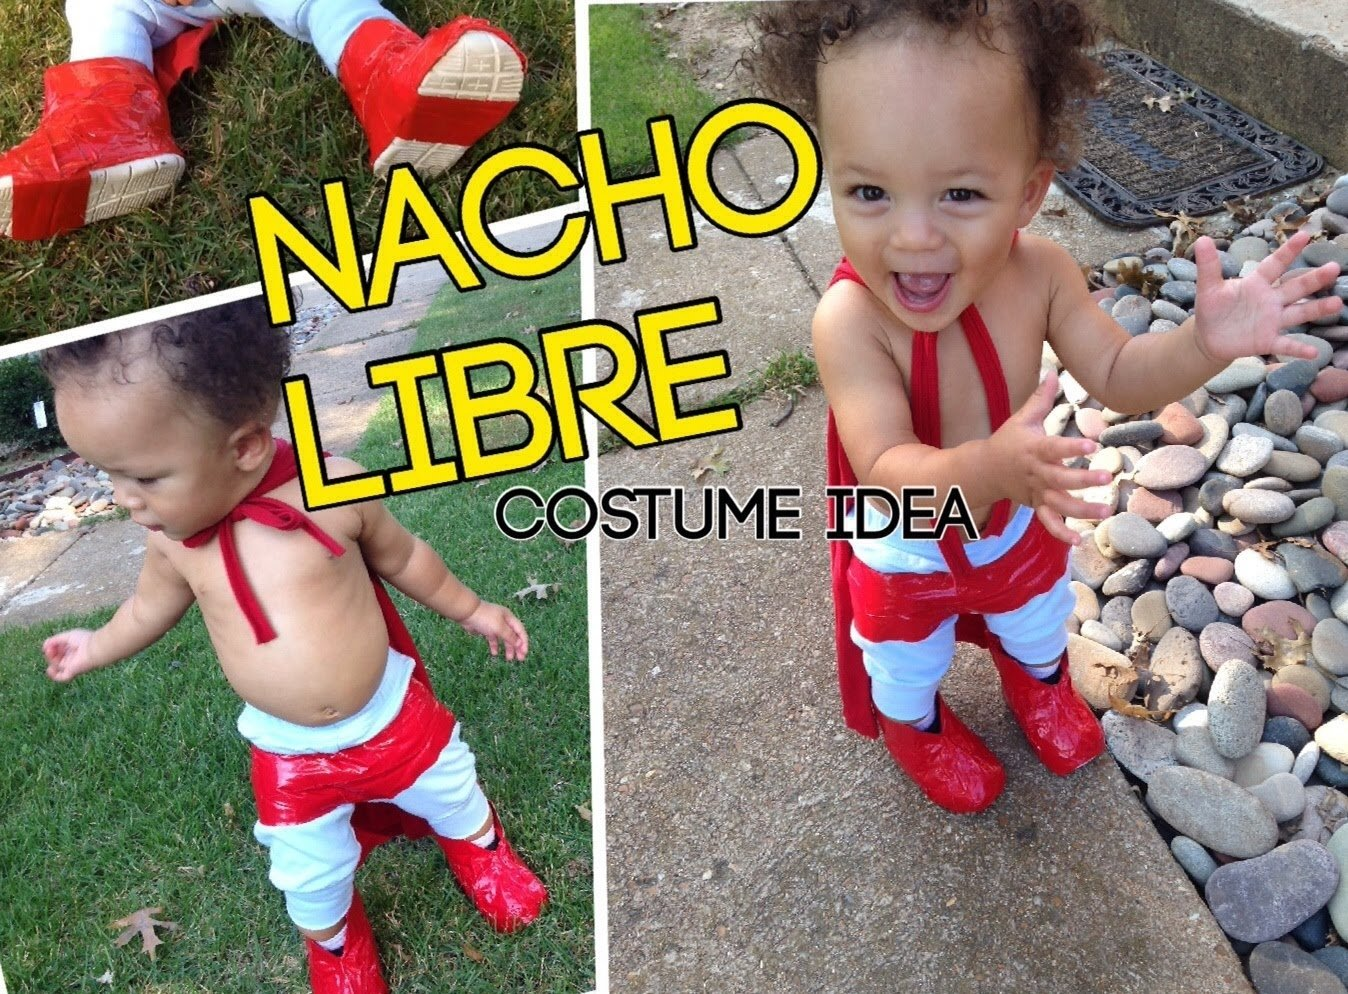 10 Awesome Boys Homemade Halloween Costume Ideas diy nacho libre costume halloween costume idea for children and 1